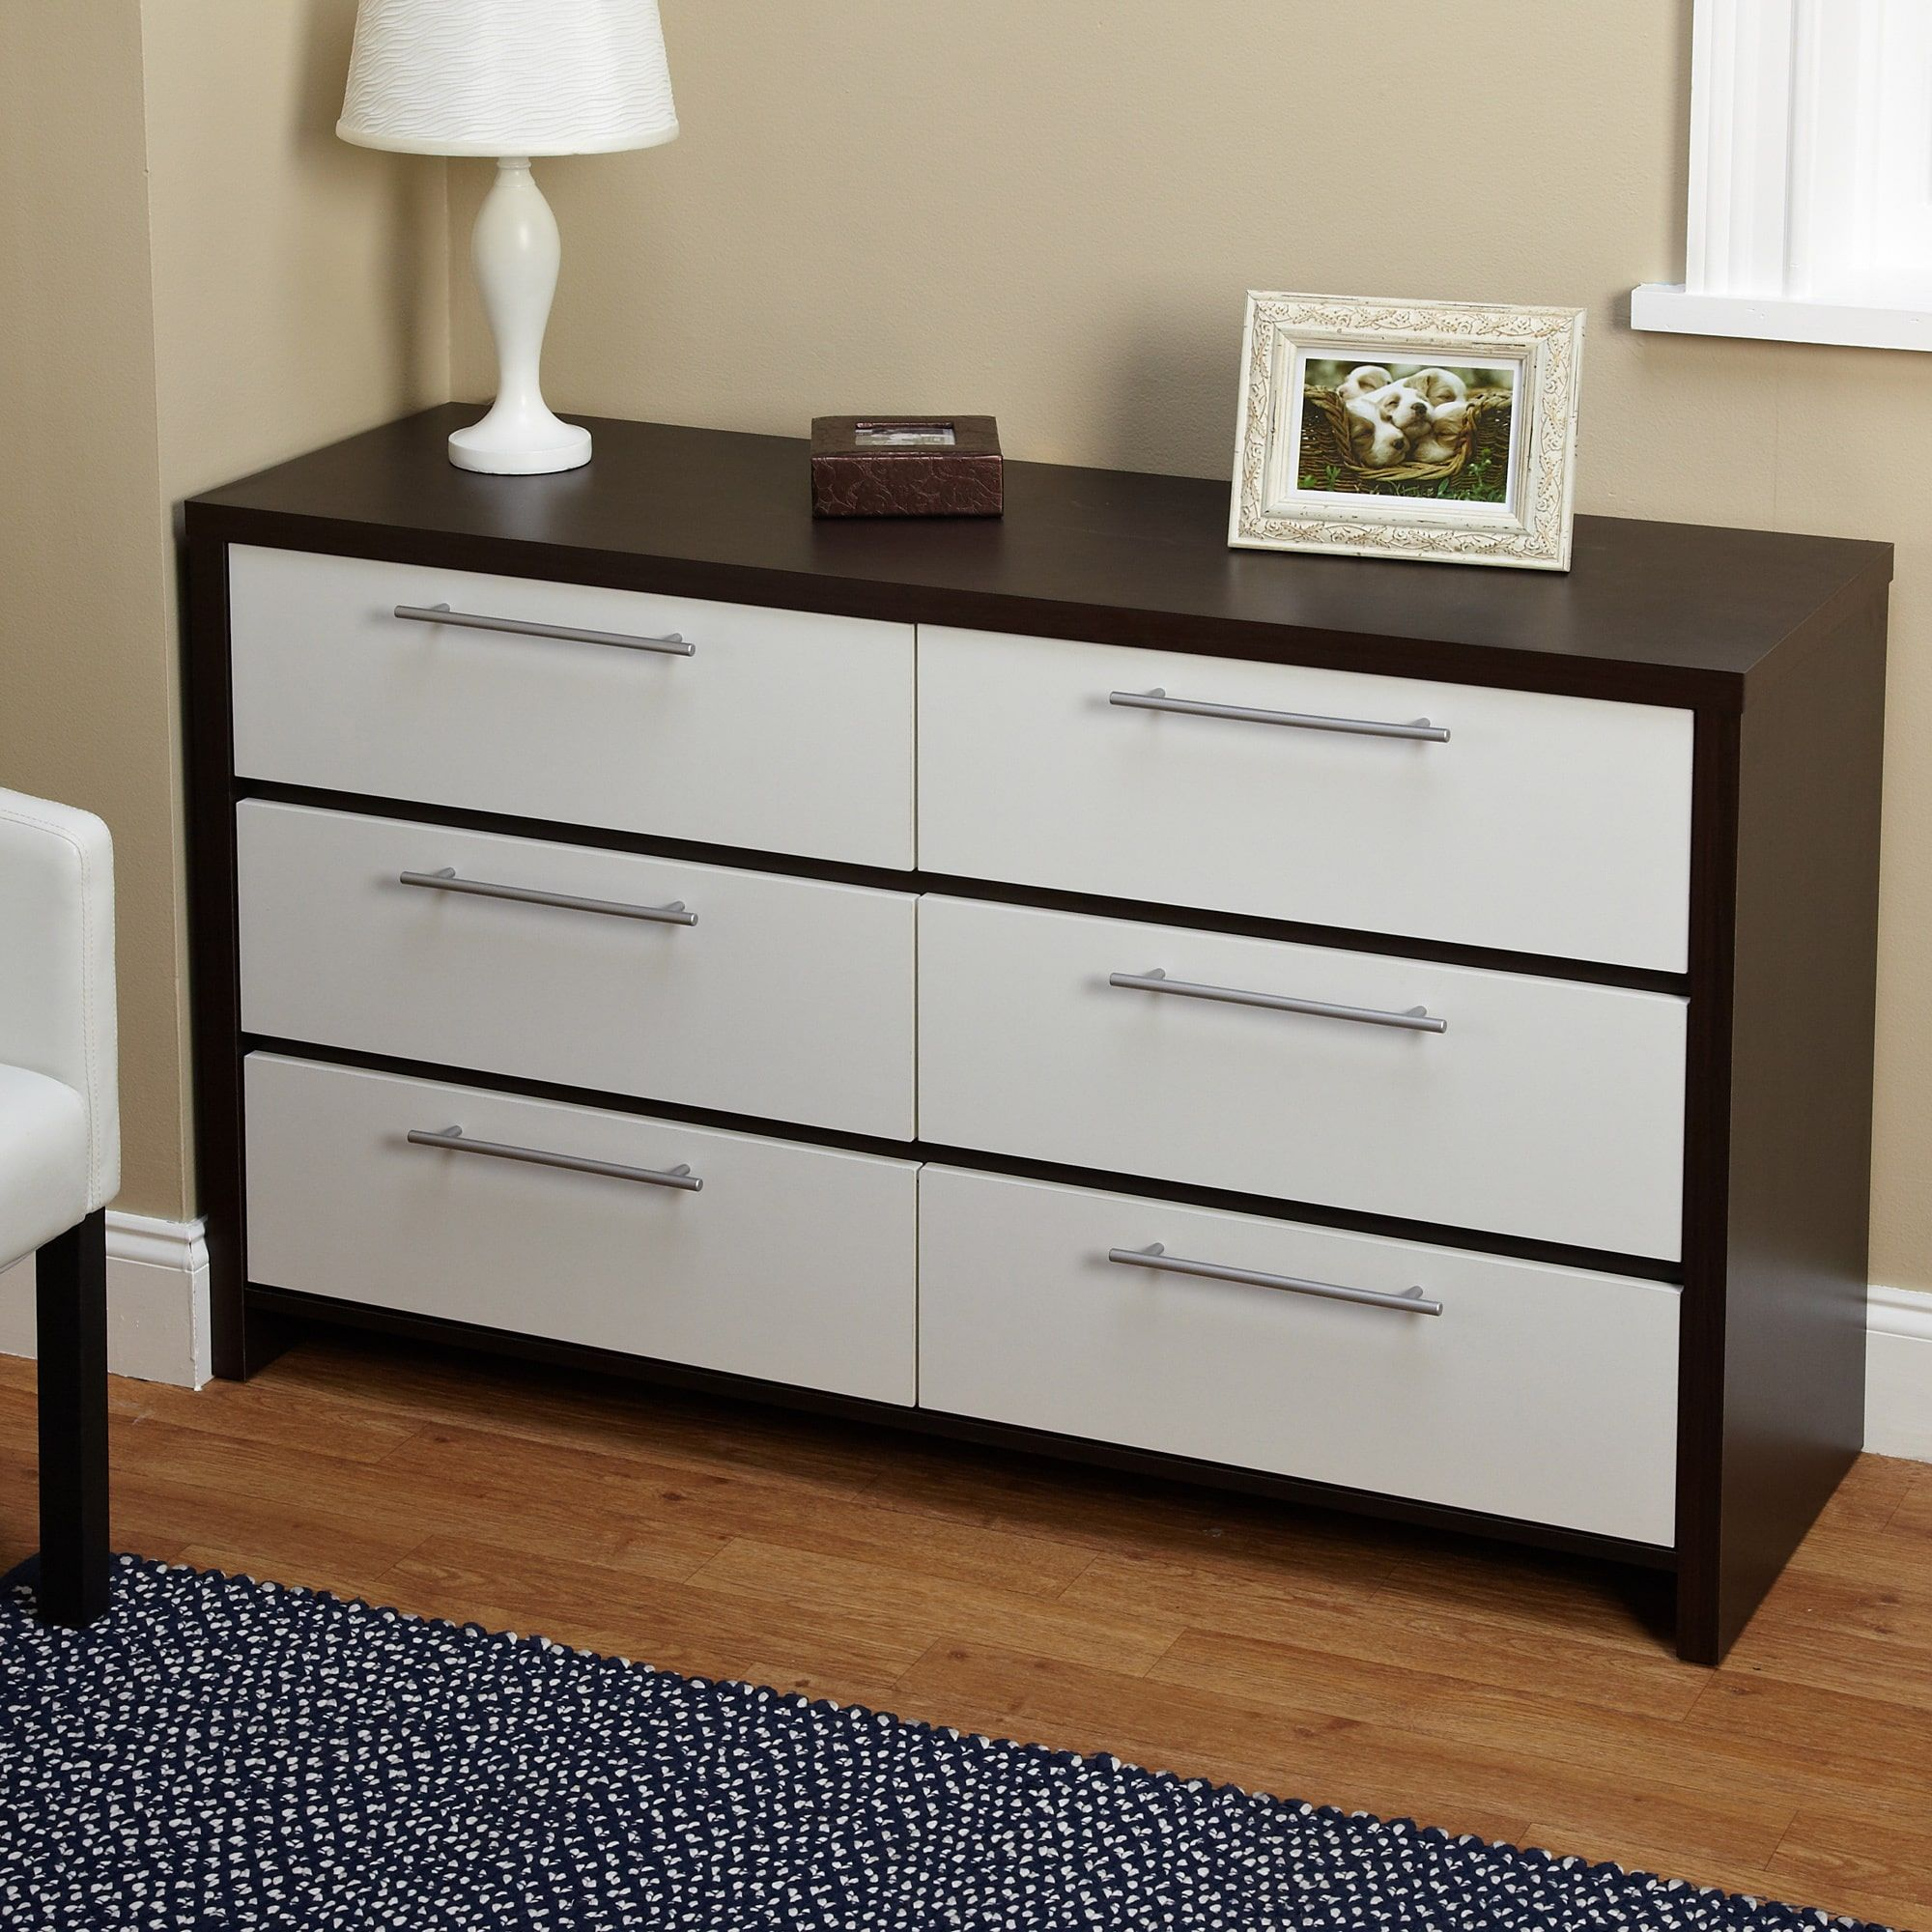 Dressers sale a wide variety of styles sizes and materials allow